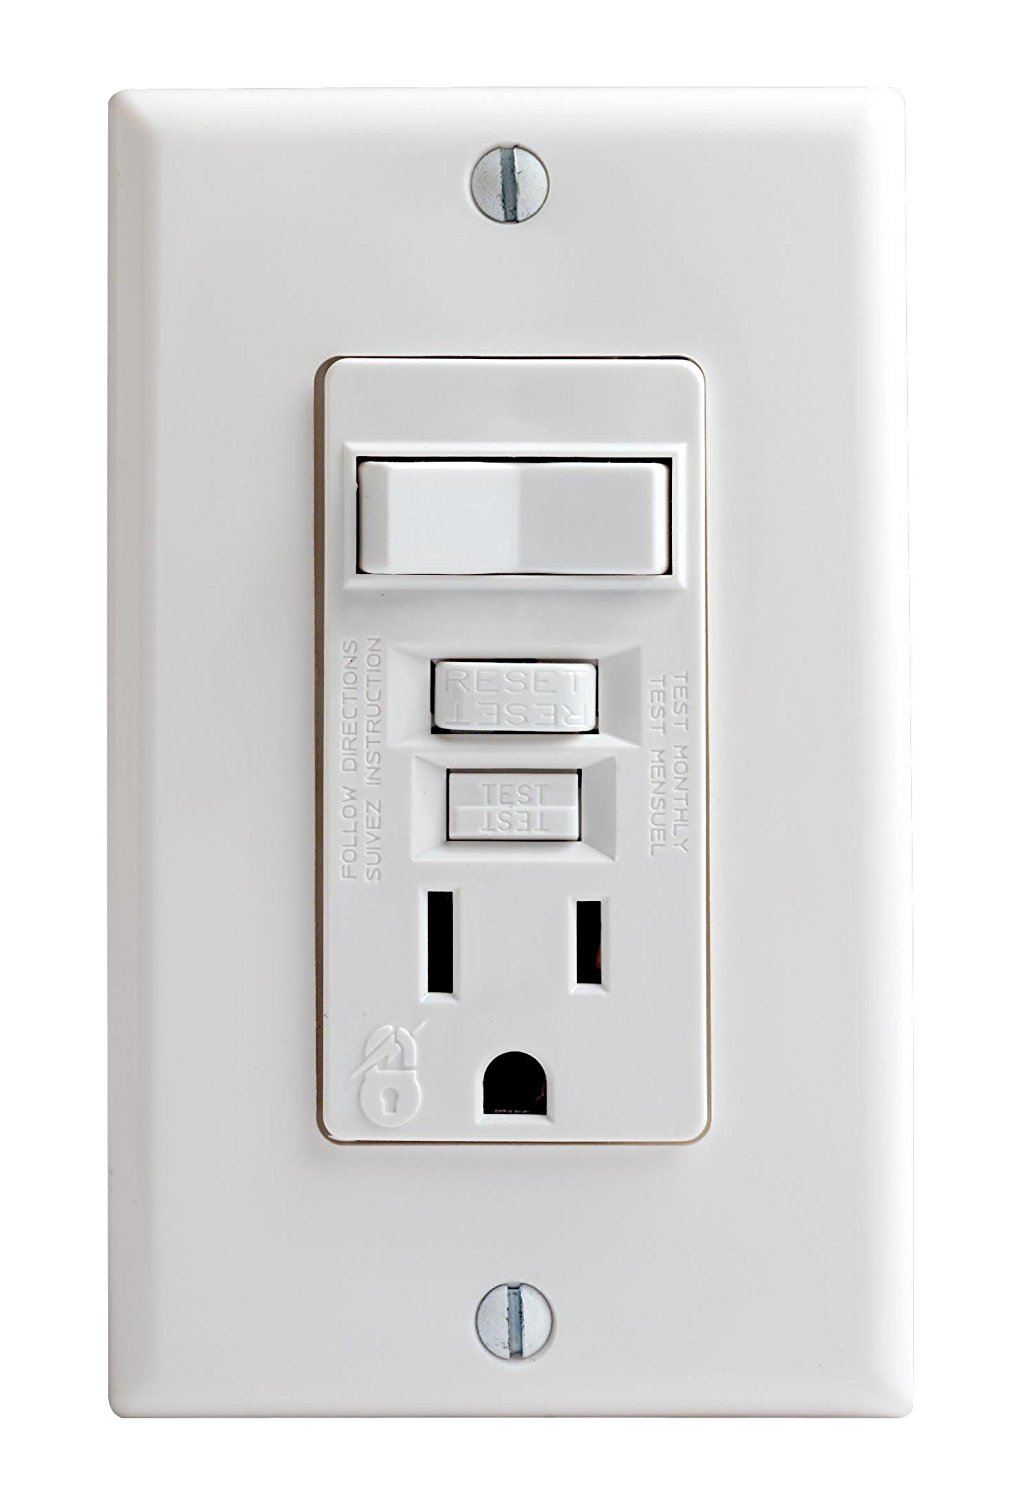 Cheap Switch Gfci, find Switch Gfci deals on line at Alibaba.com